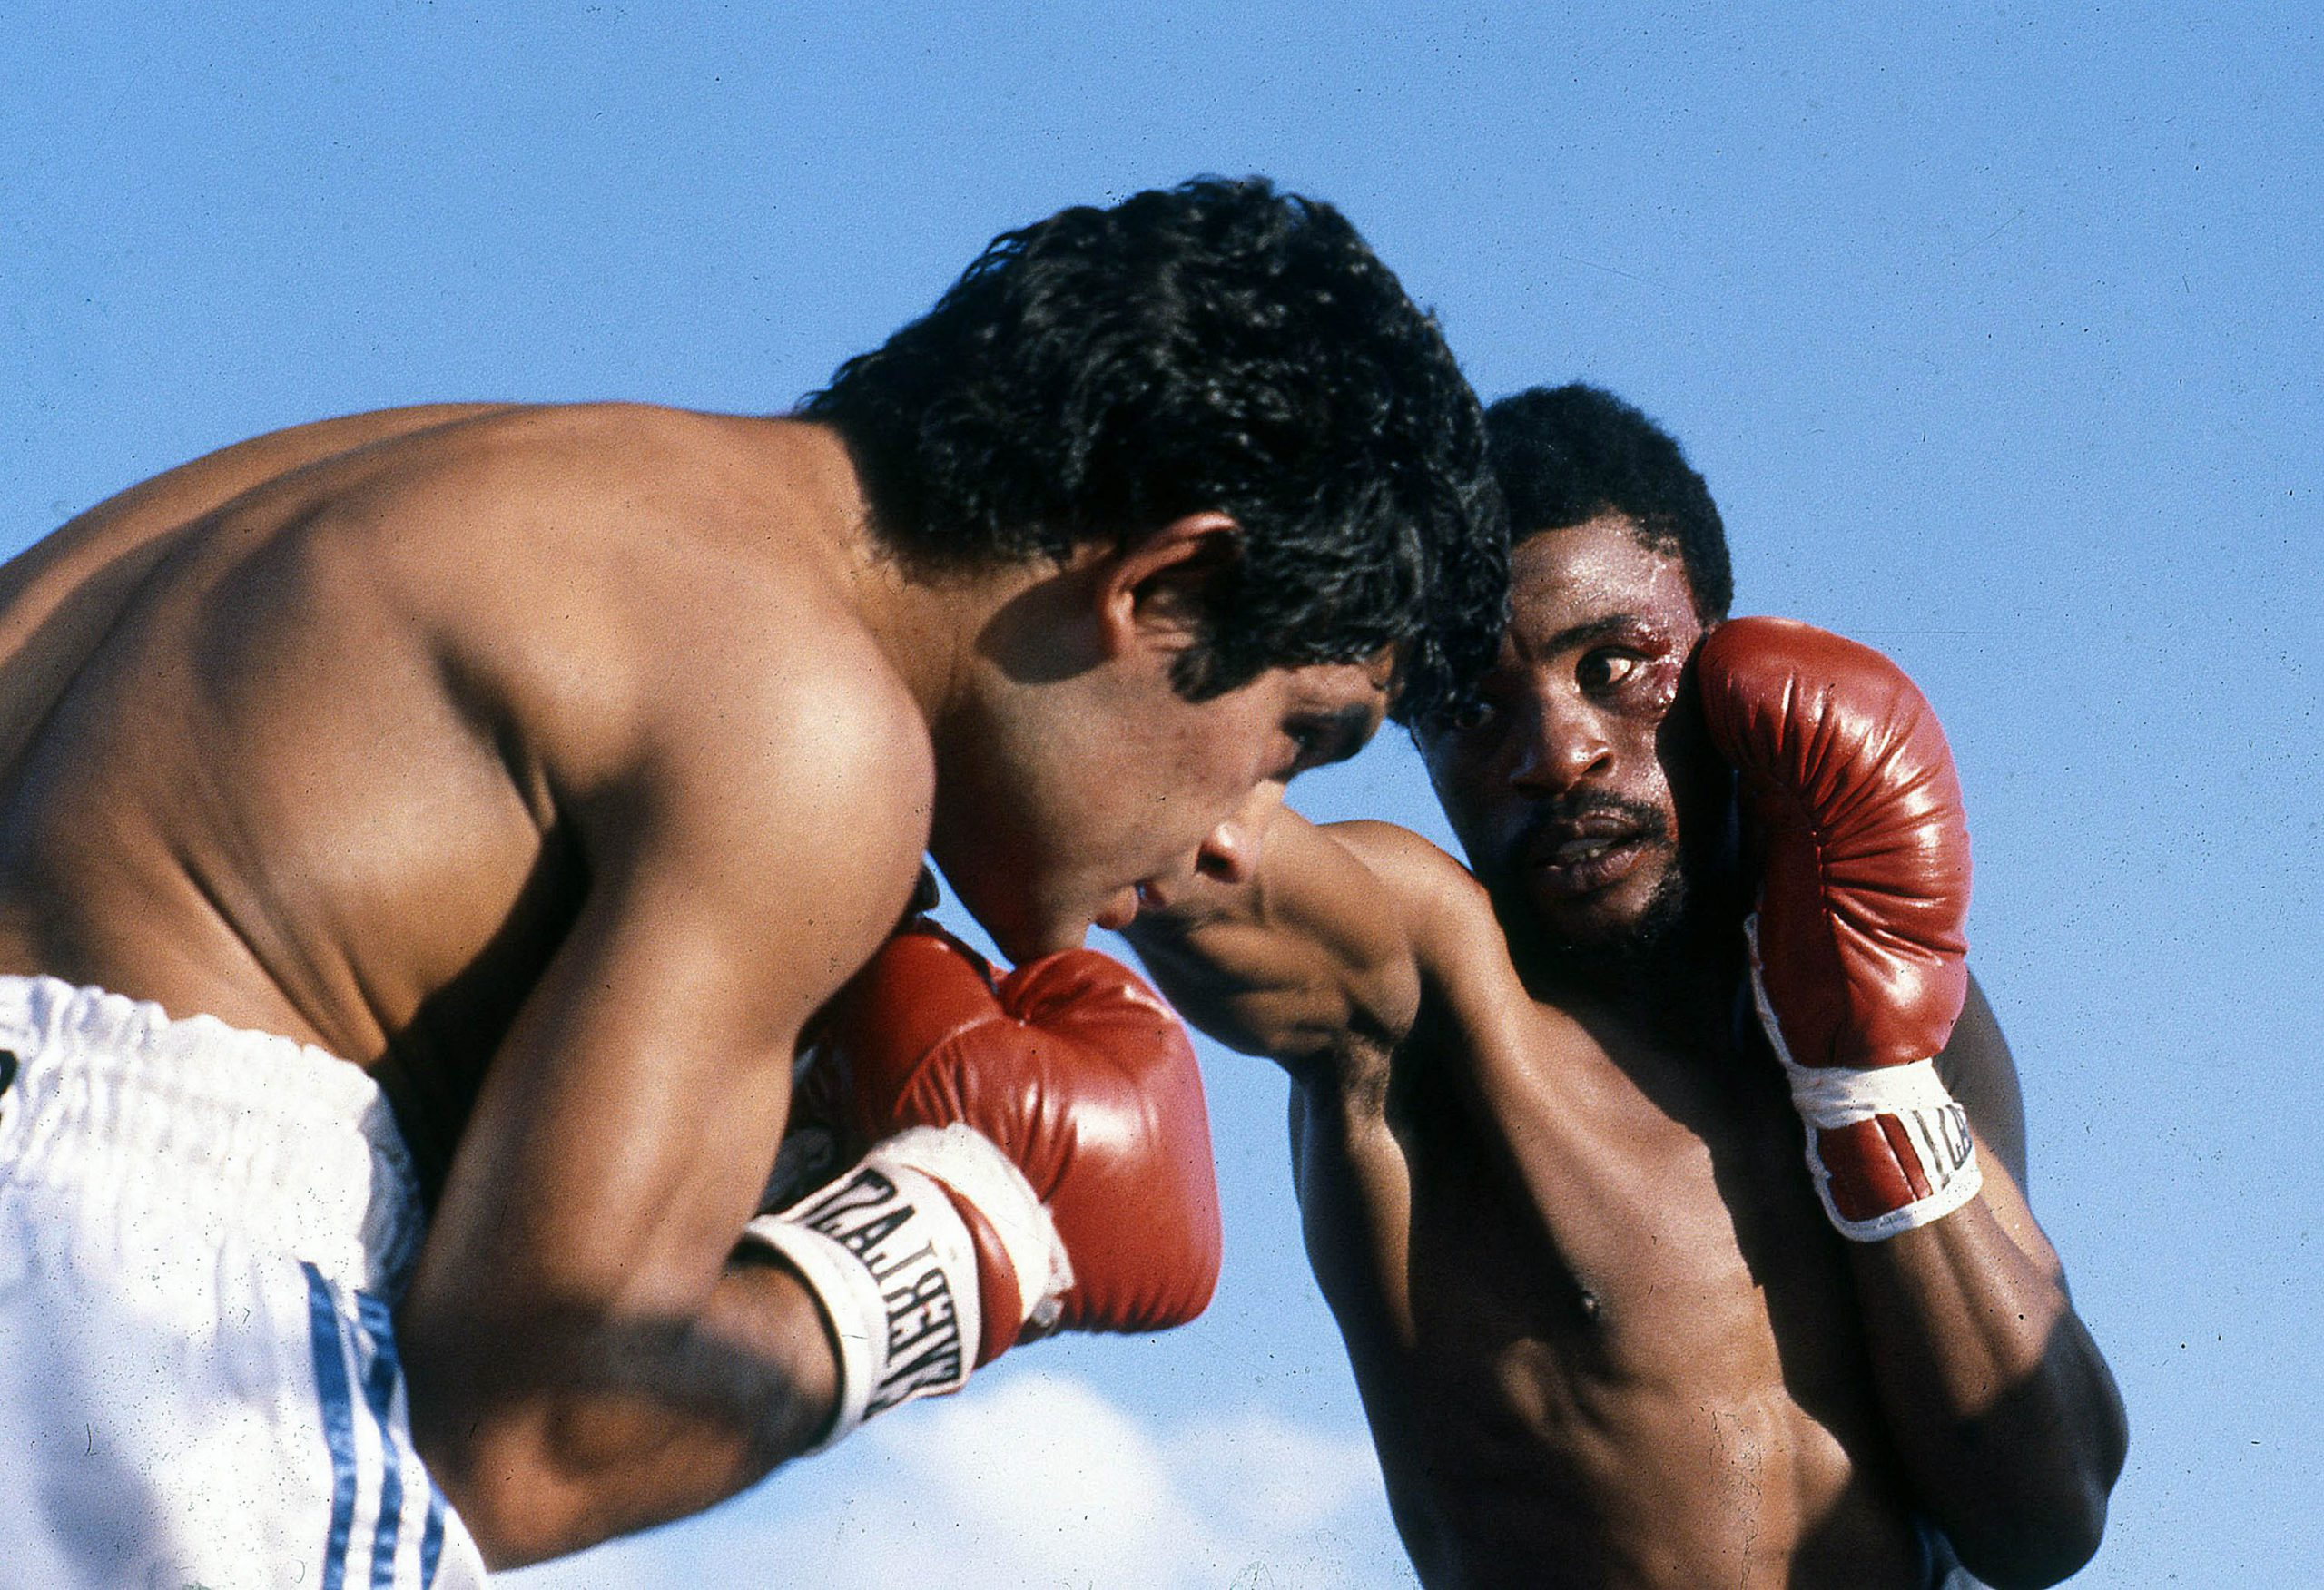 Undated: Santos Laciar of Argentina and Peter Mathebula of South Africa during their bout in Soweto. (Photograph by Wessel Oosthuizen/Gallo Images)